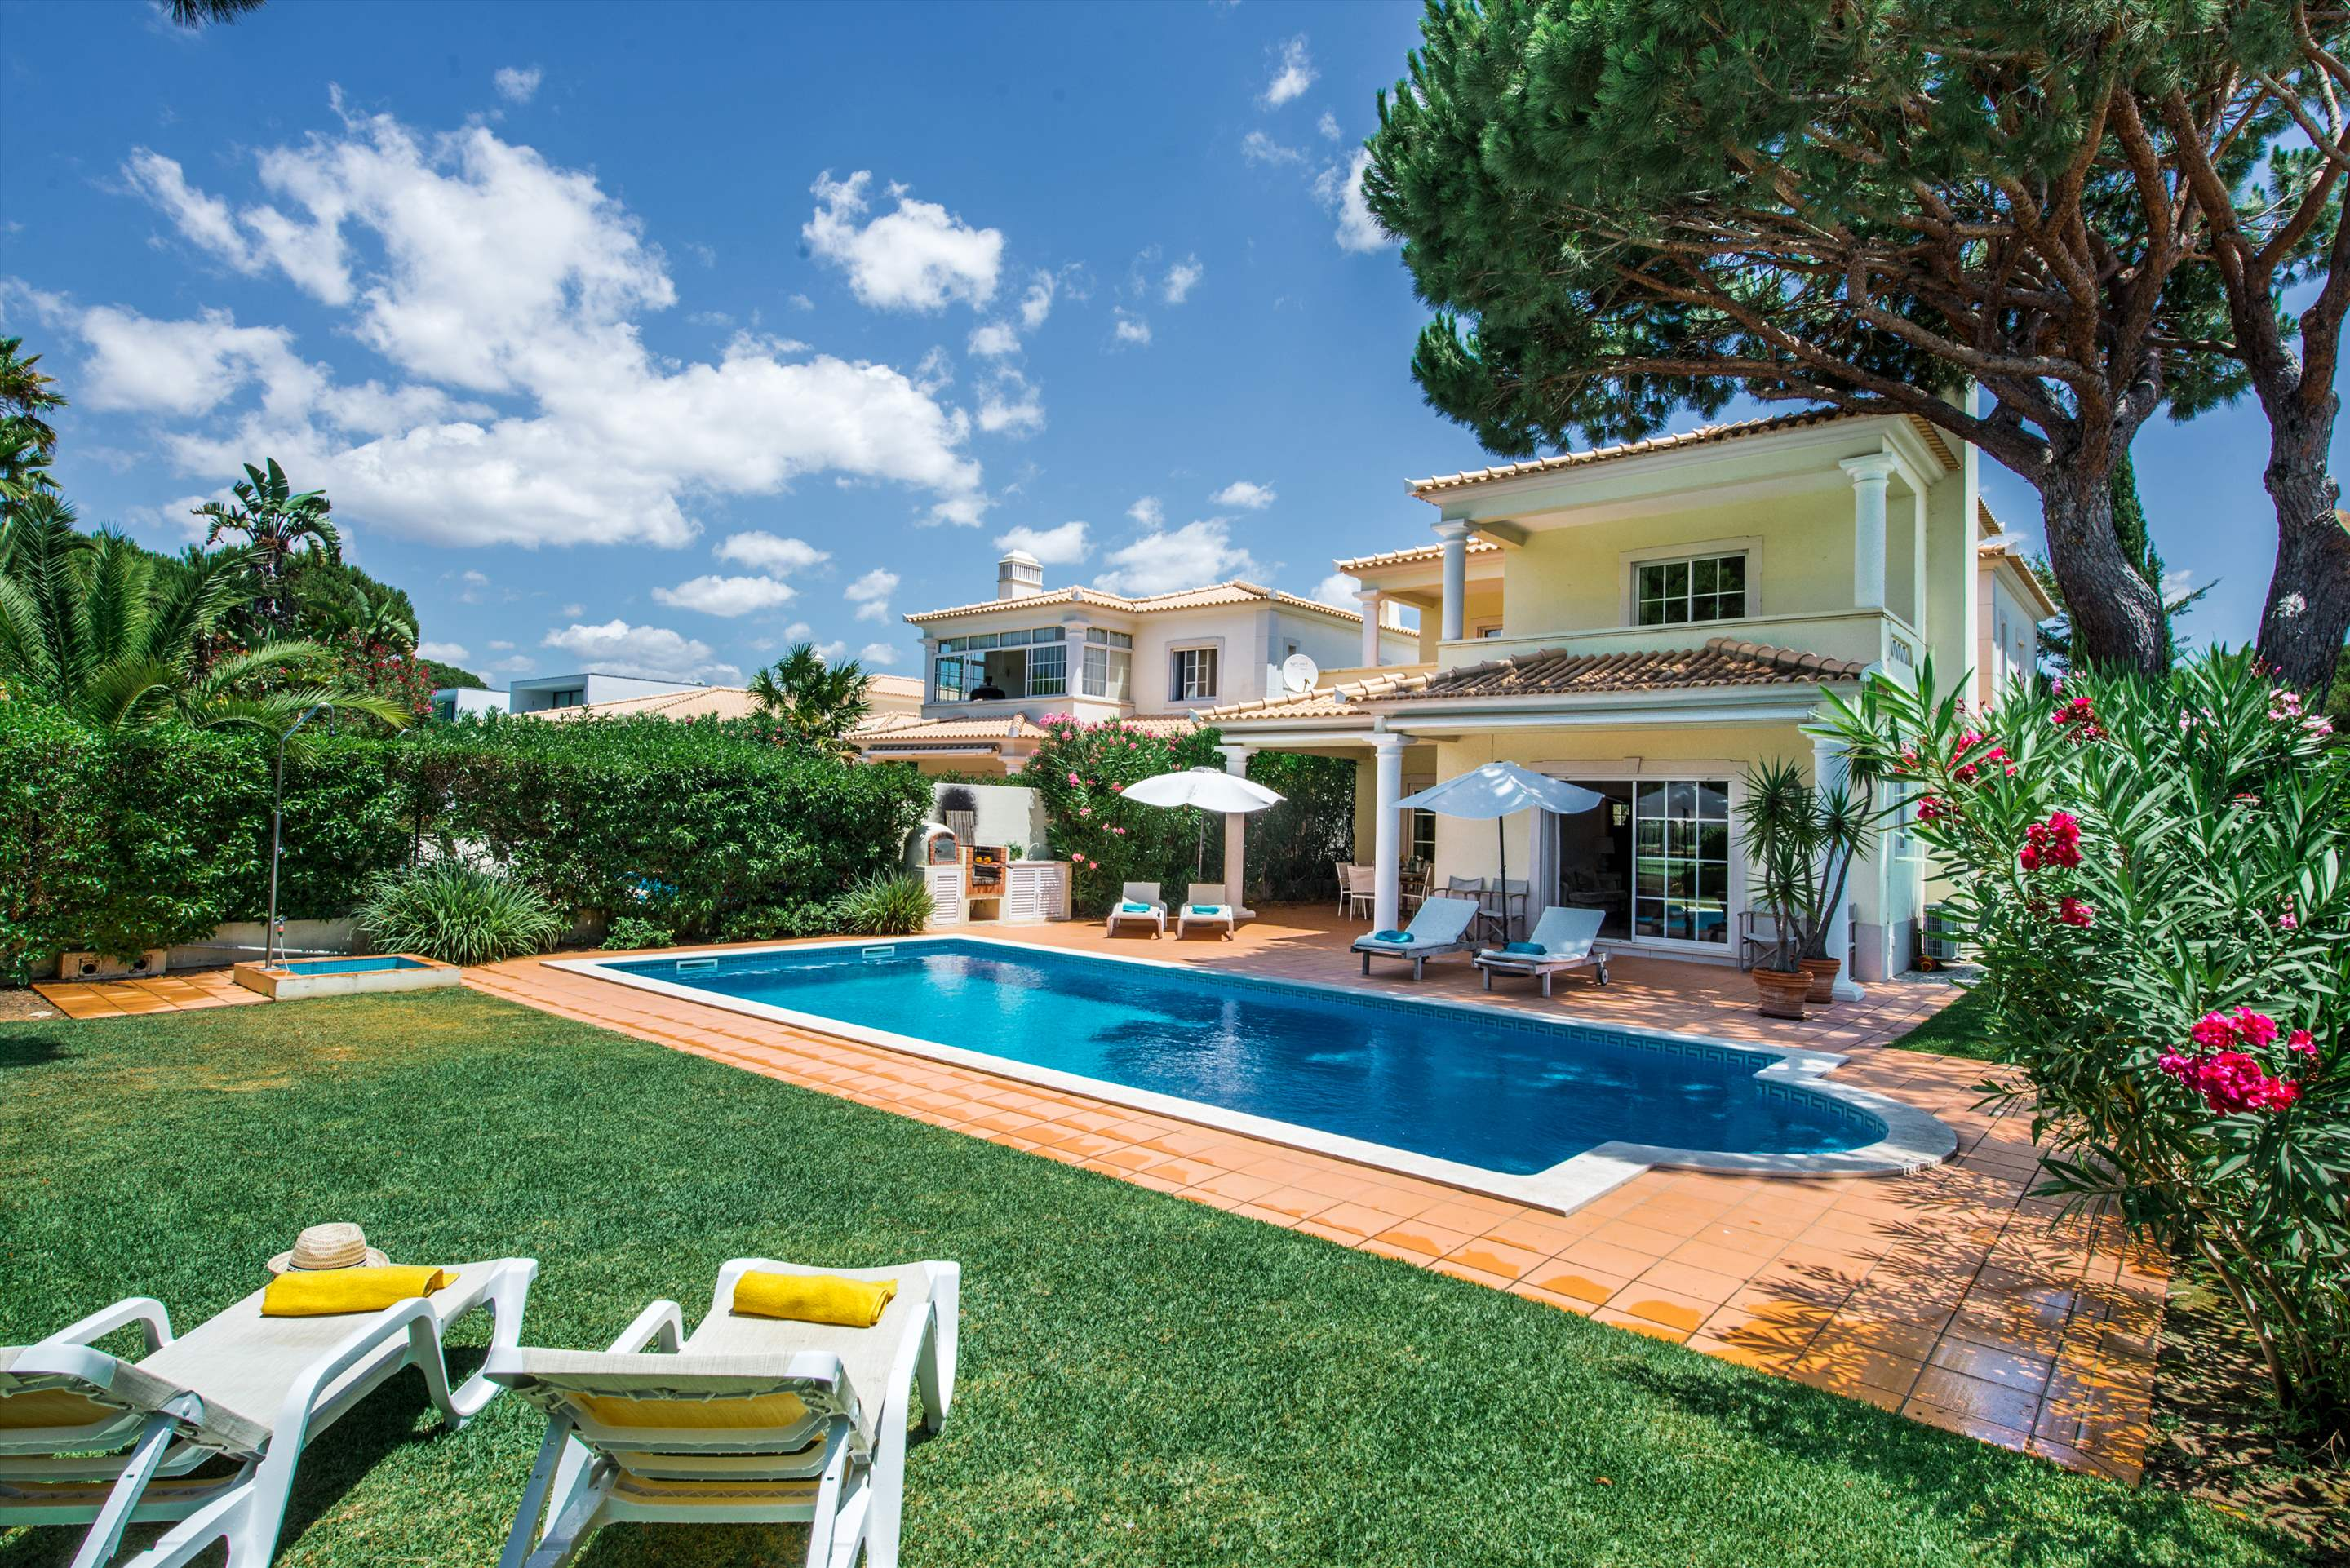 Vivenda Anita 1, 4 bedroom villa in Vilamoura Area, Algarve Photo #26